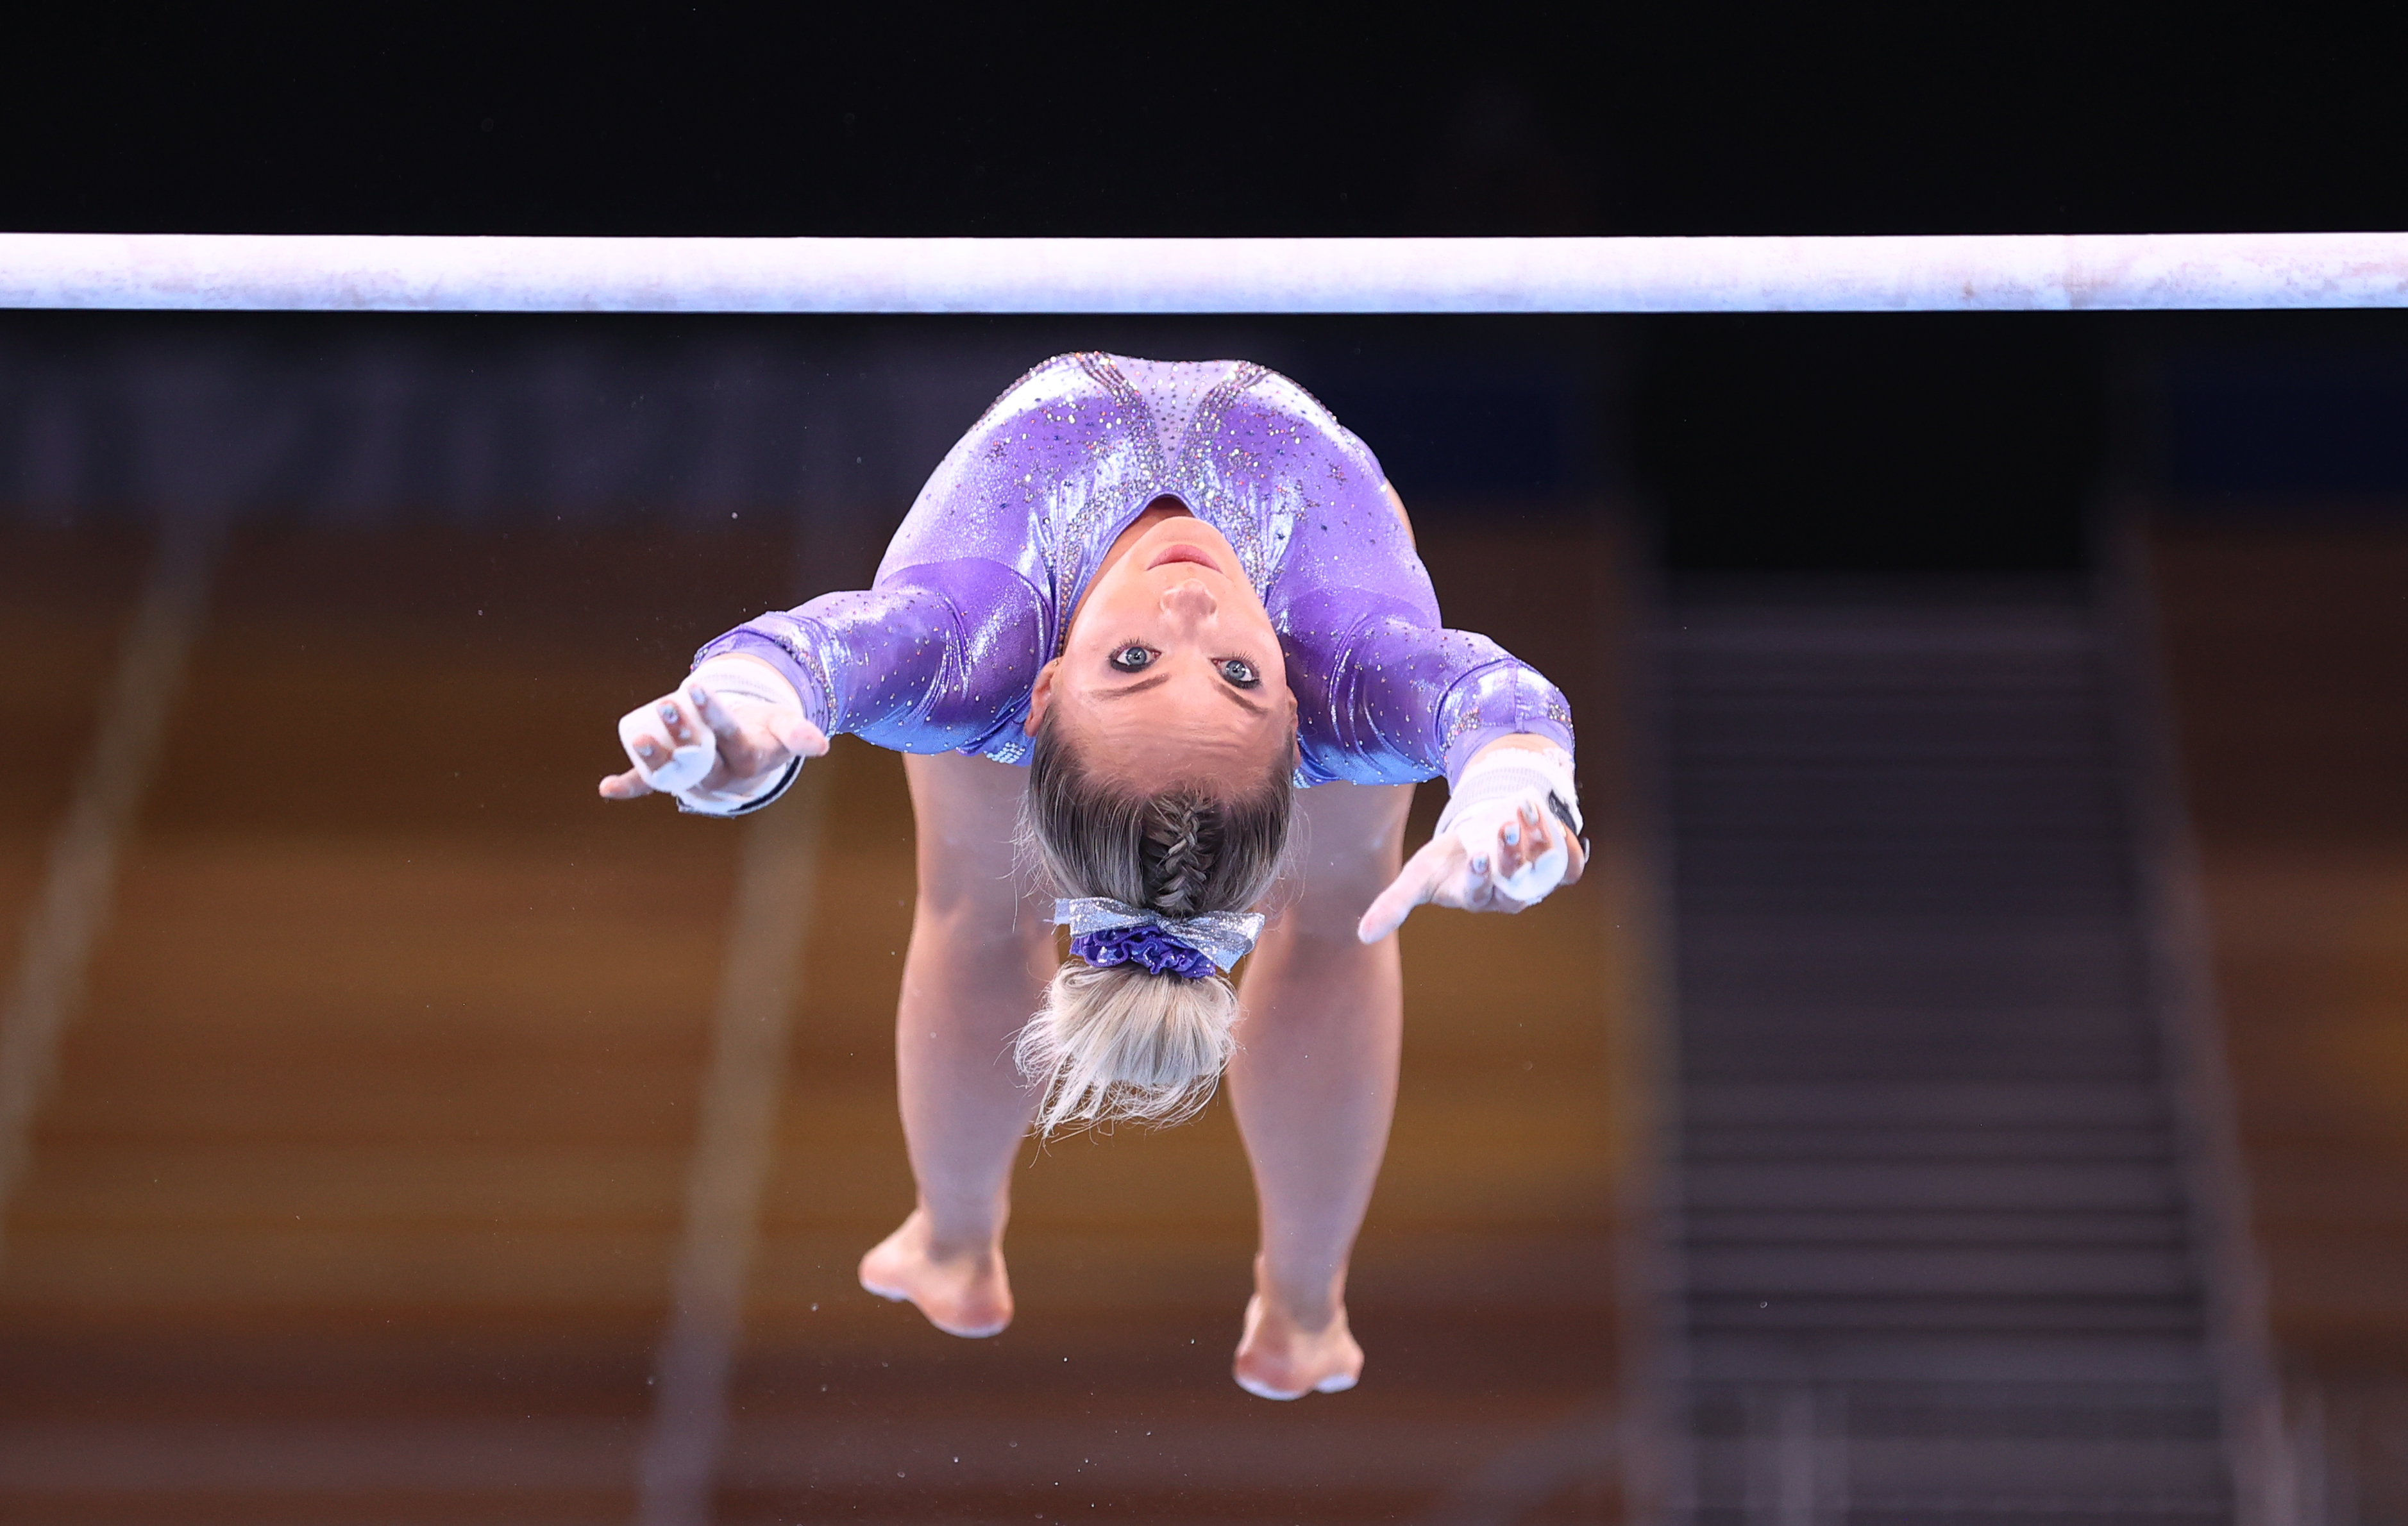 Tokyo 2020 Olympics - Gymnastics Artistic Training - Ariake Gymnastics Centre, Tokyo, Japan - July 22, 2021 Mykayla Skinner of the United States on the uneven bars during training REUTERS/Mike Blake